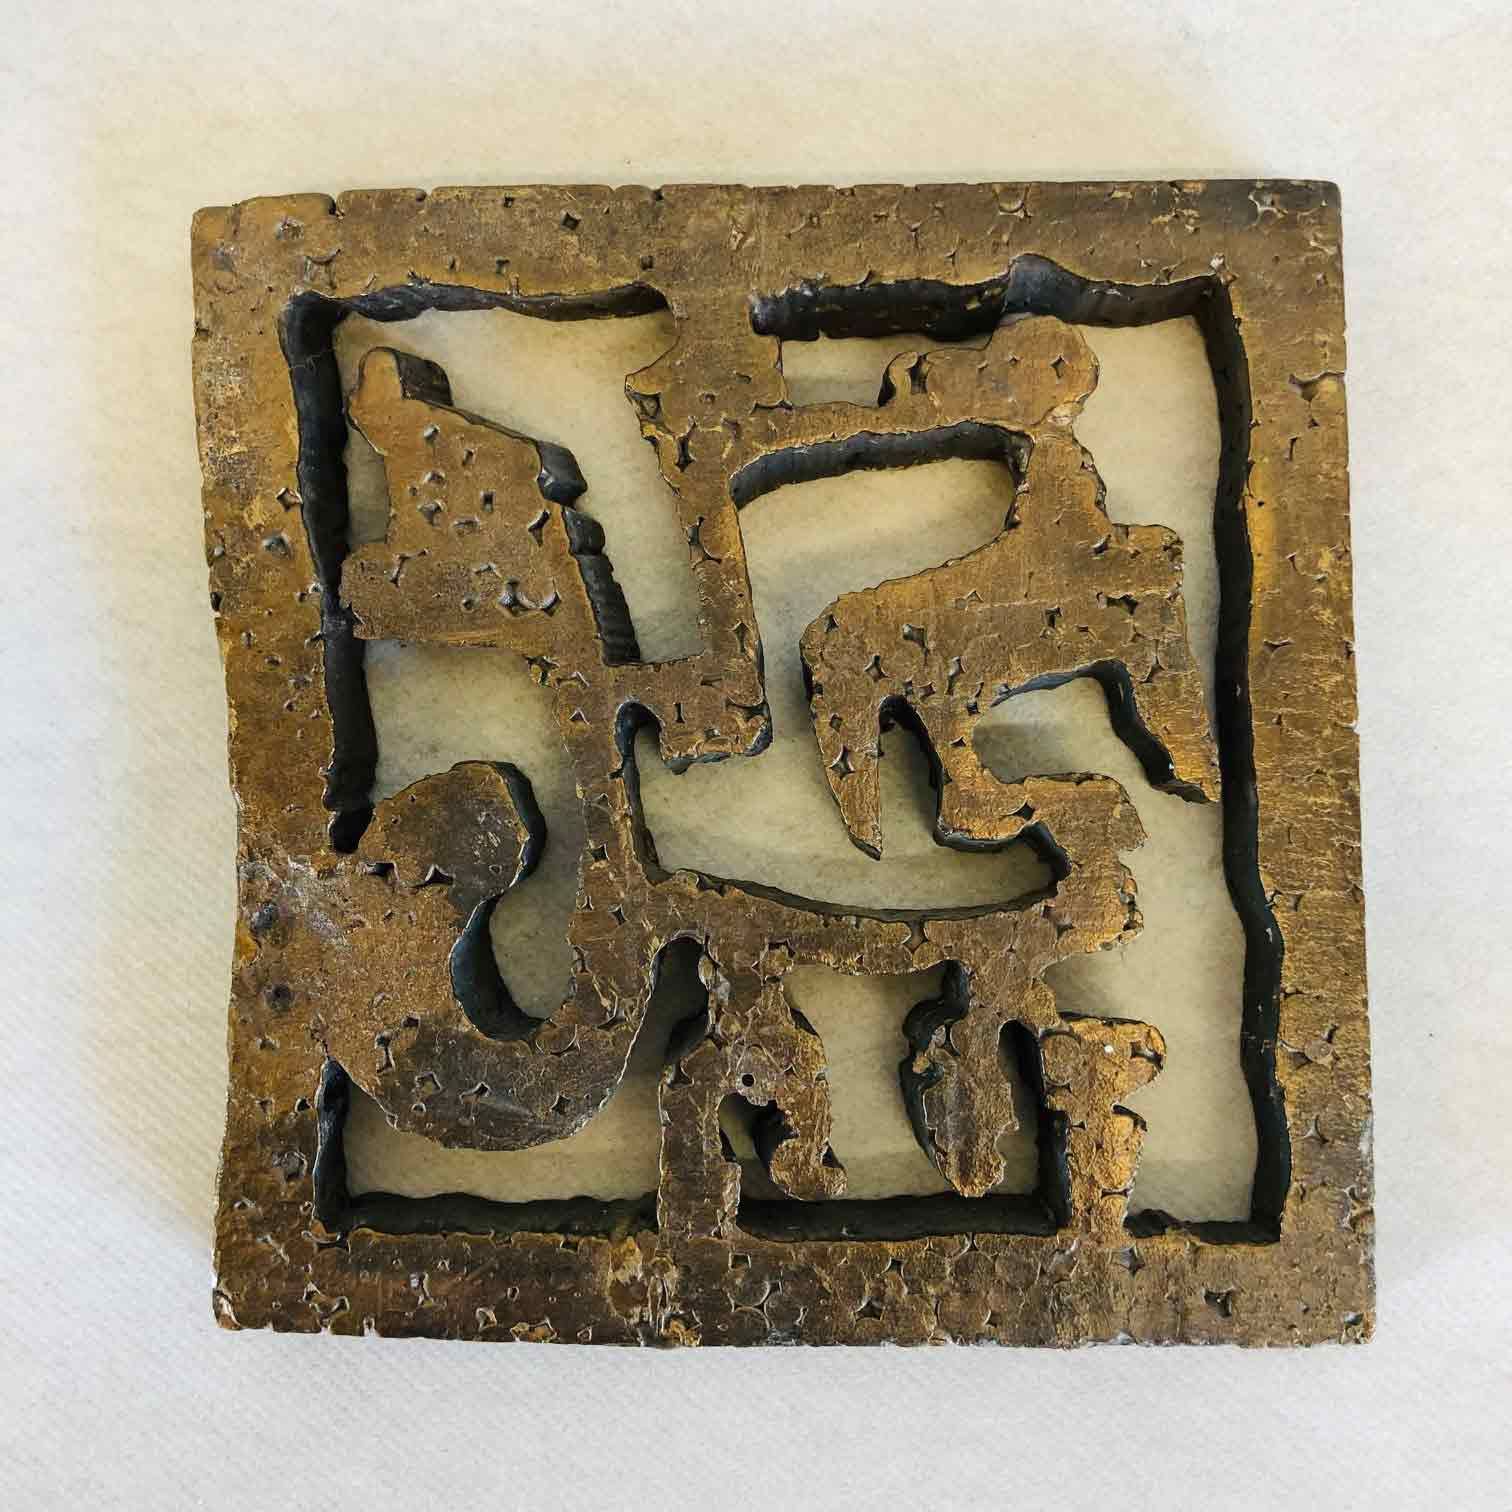 Materiale: bronze - Mål: 16x16x2 - Privateje